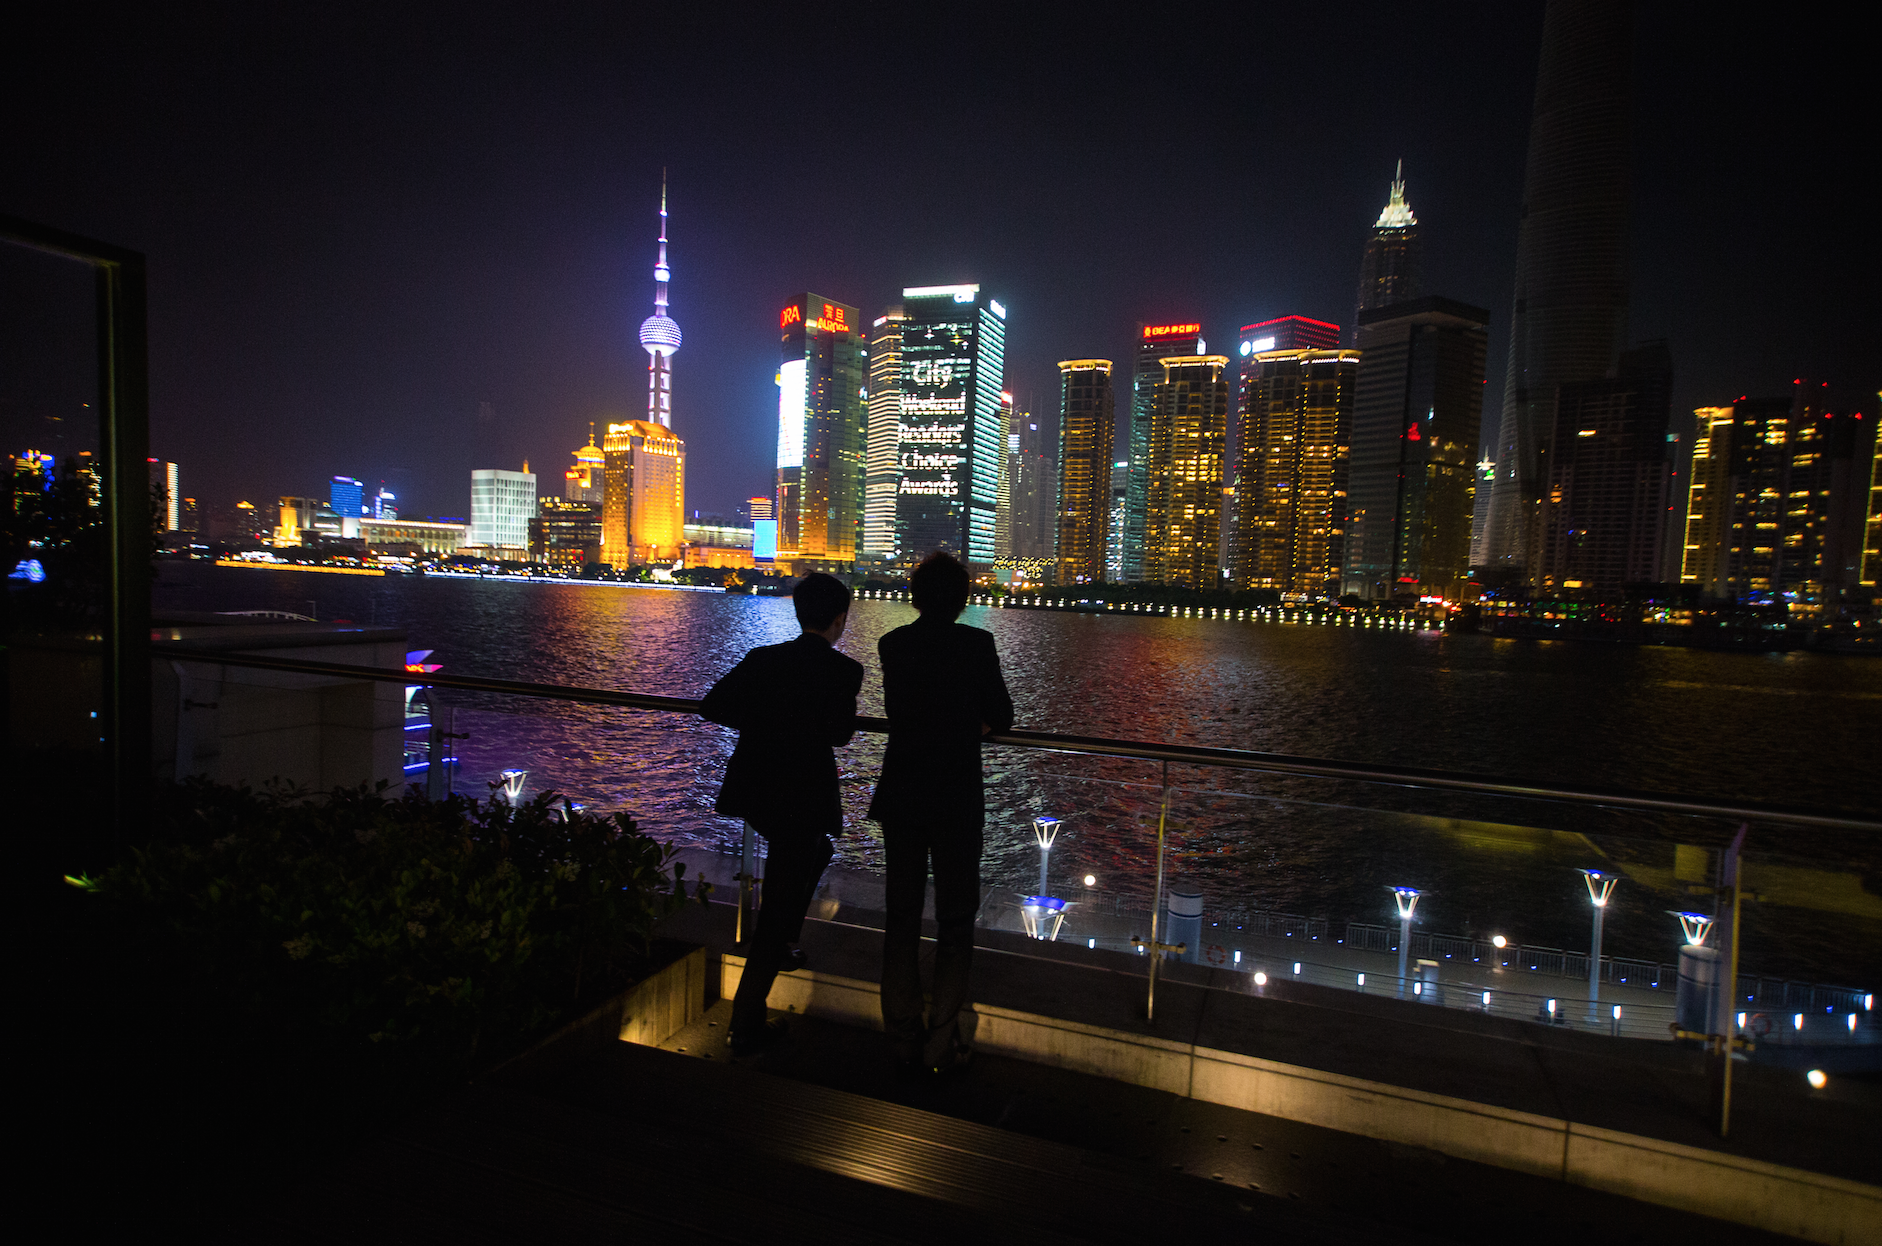 View of The Bund, Shanghai